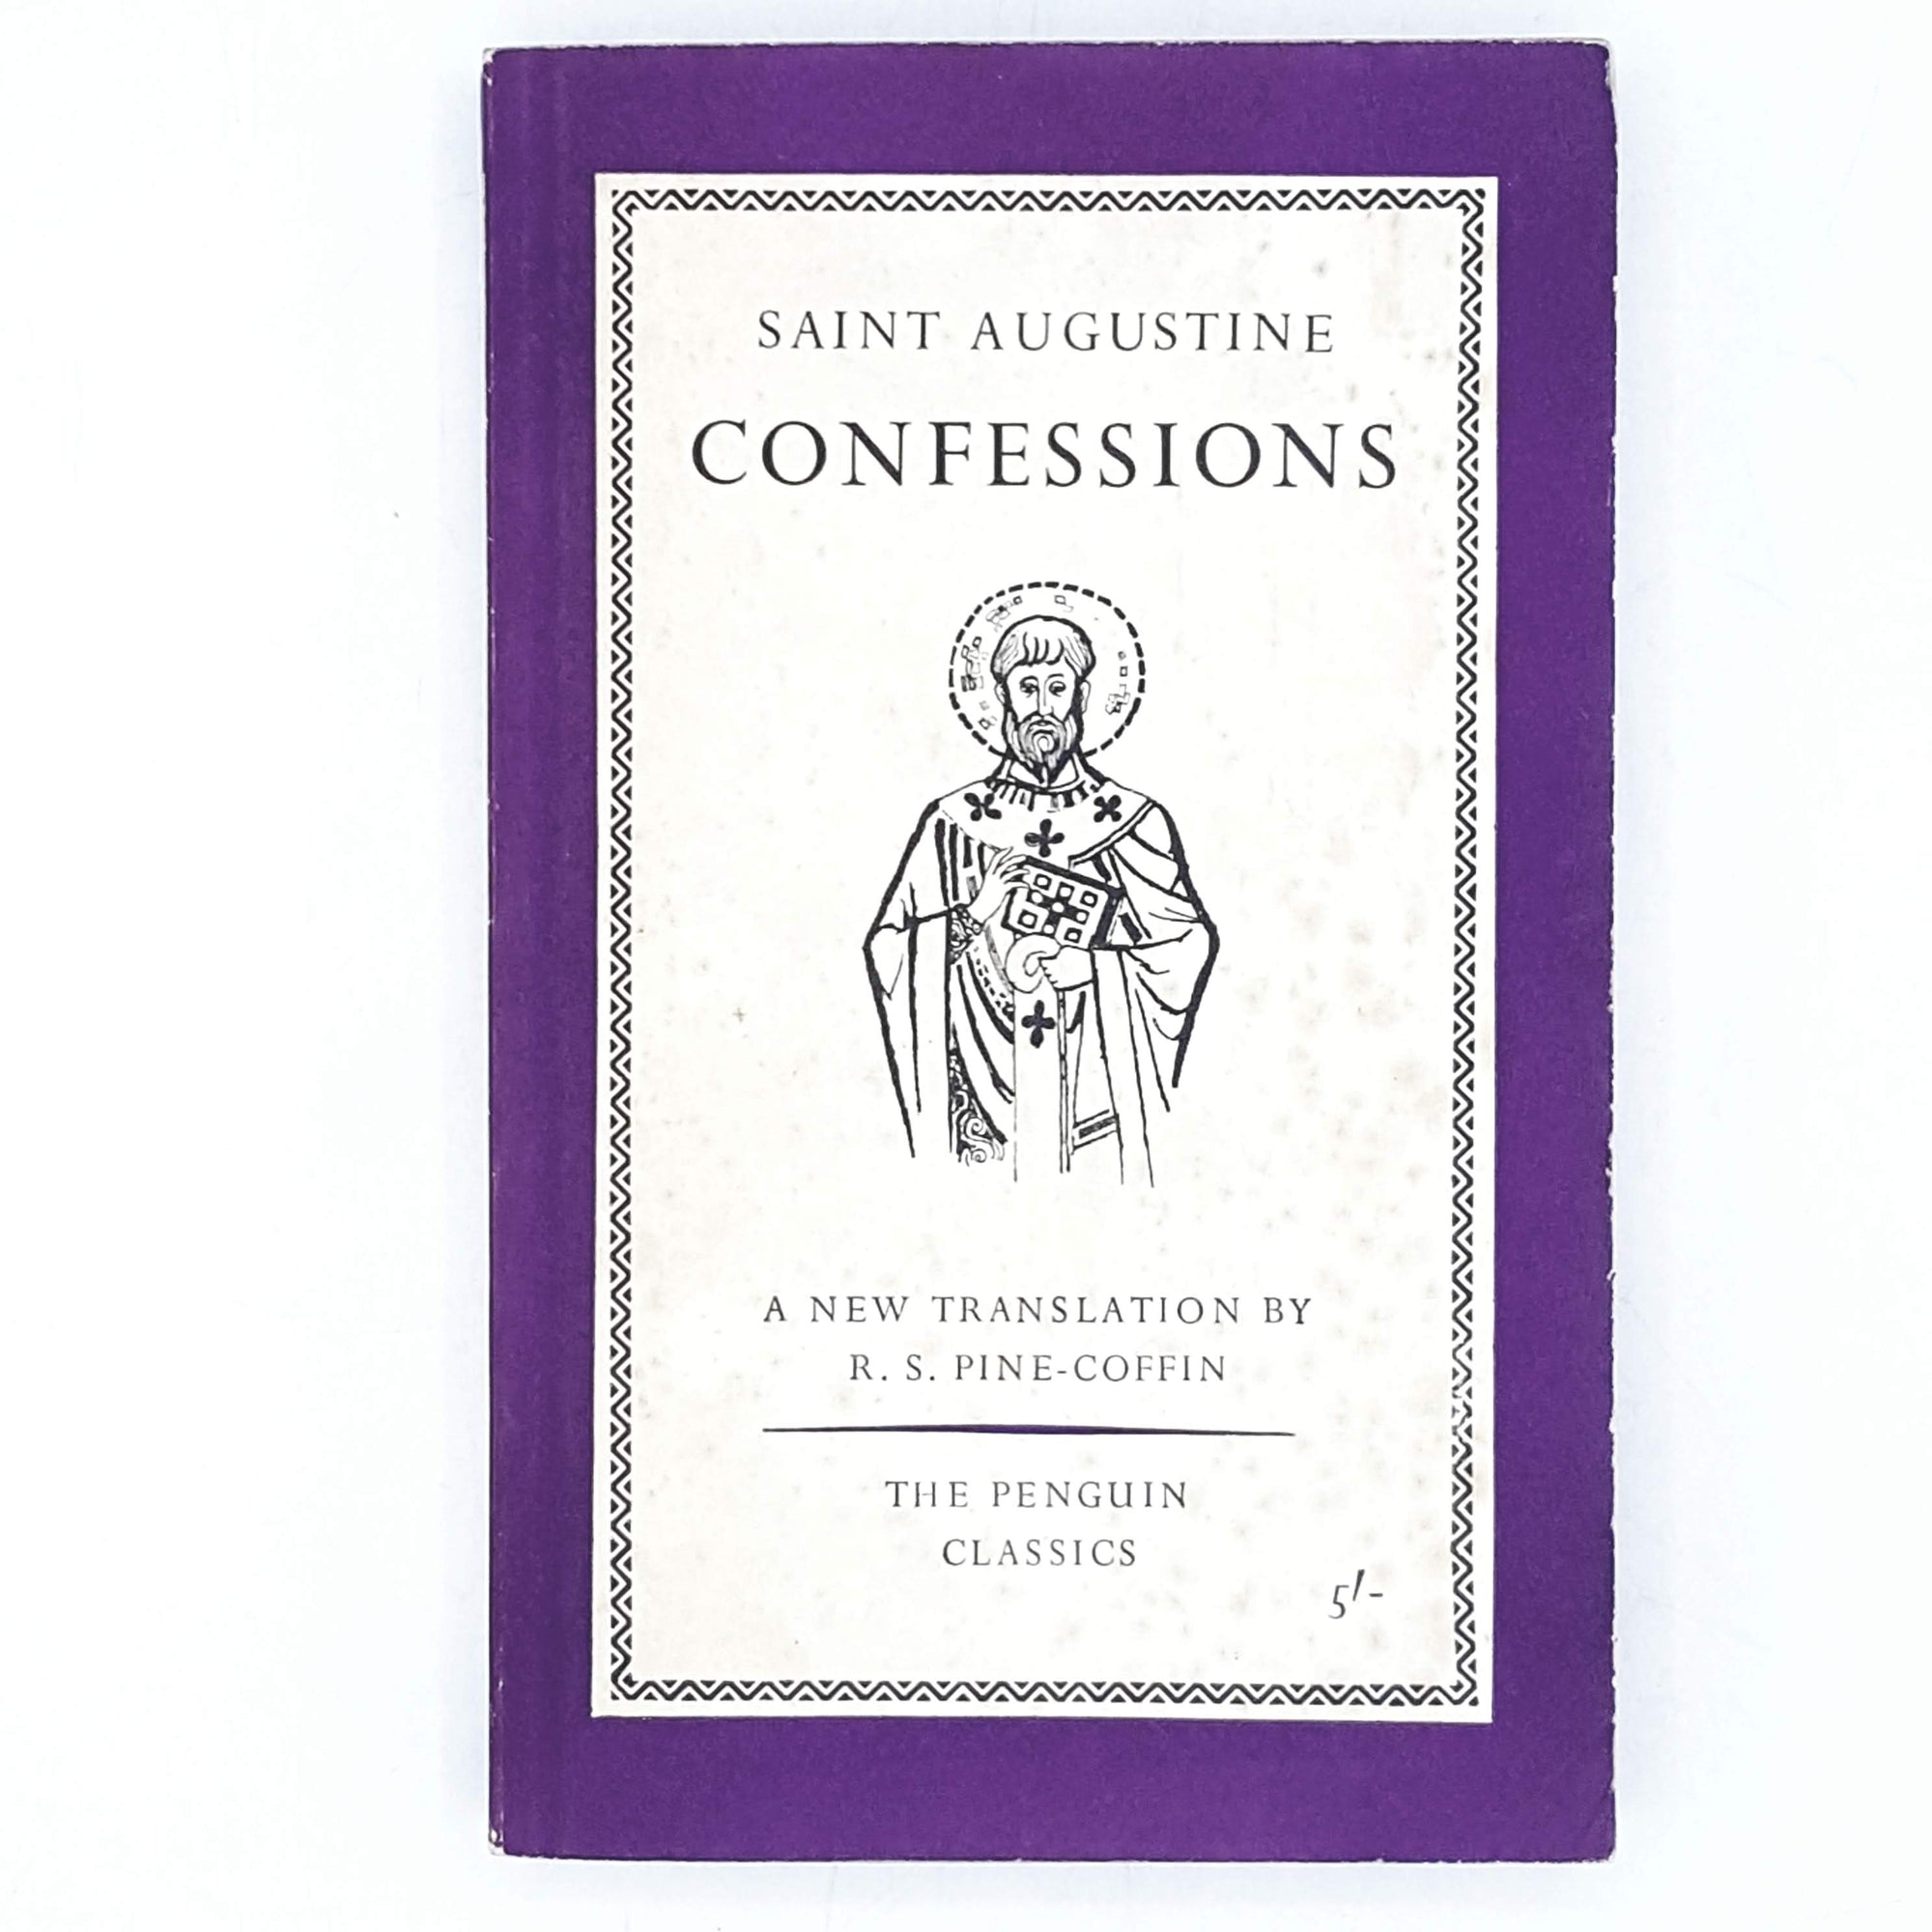 First Edition Penguin Satin Augustine's Confessions 1961